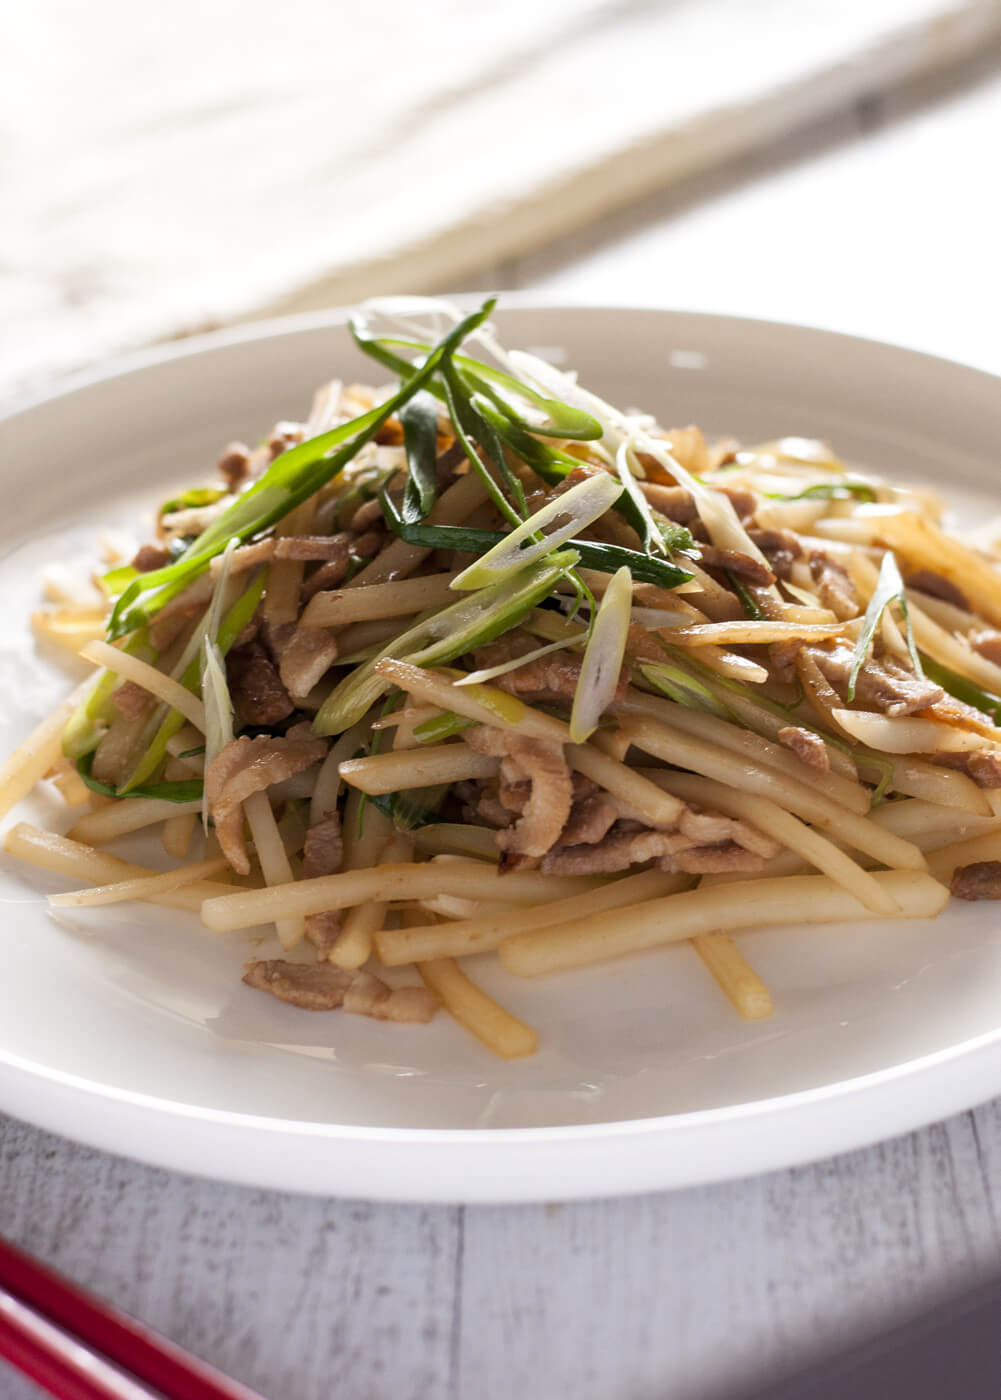 You will be surprised to learn that the texture of potatoes when quickly stir fried is so unique and different from the cooked potatoes you know. Pork and potato stir fry turns the potatoes into something totally different from the usual dishes like baked potatoes, potato salads and mashed potatoes. And it is so quick to make and yummy.